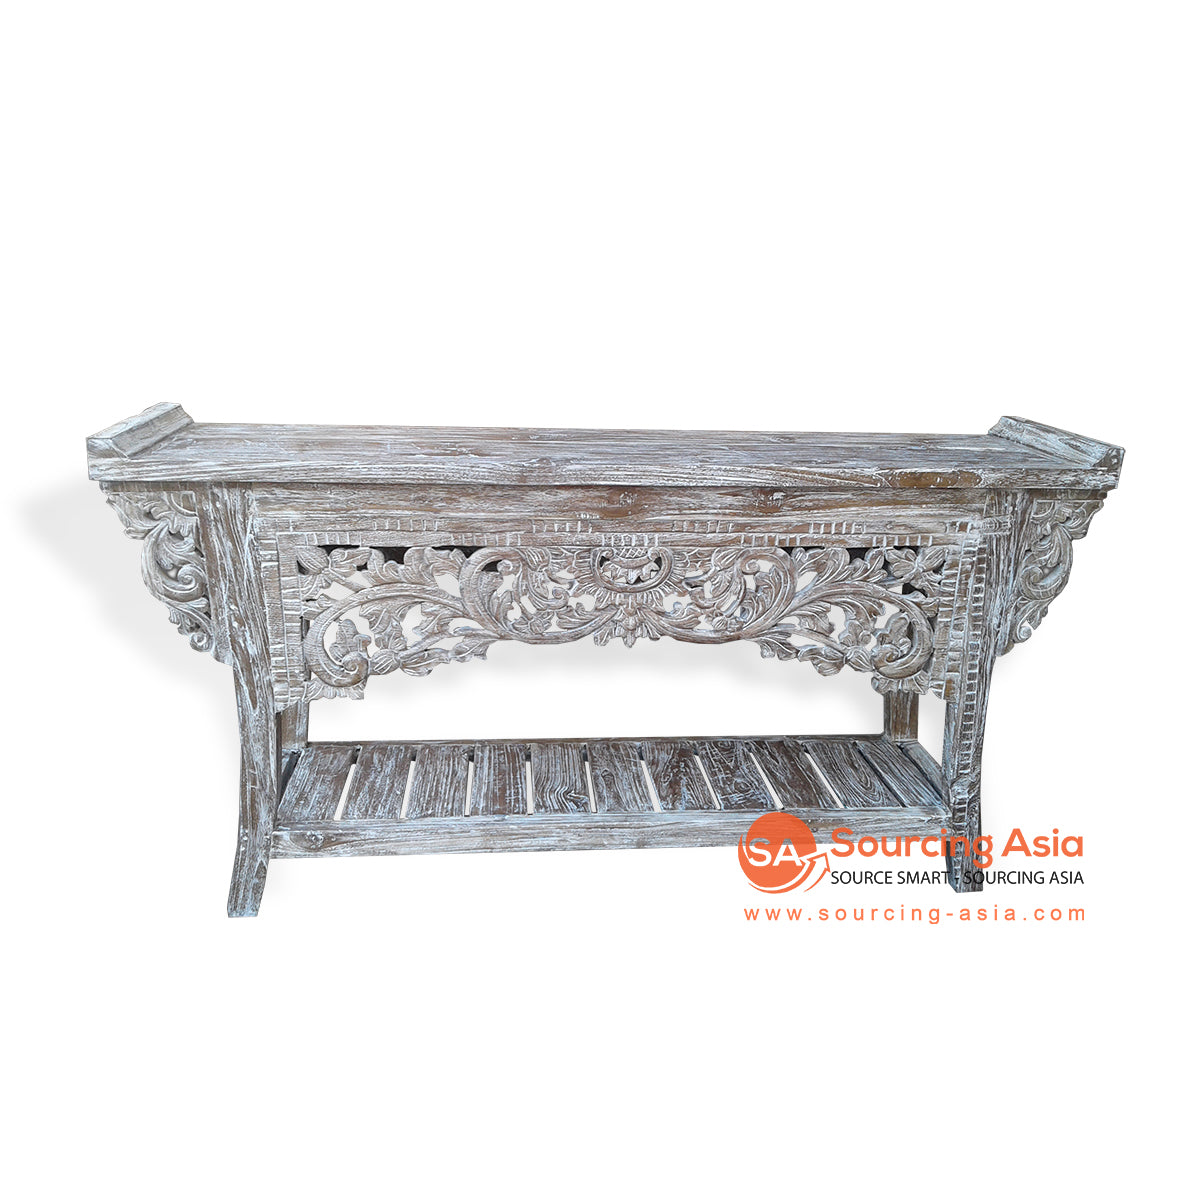 EVA070 RECYCLED WOOD CARVED CONSOLE